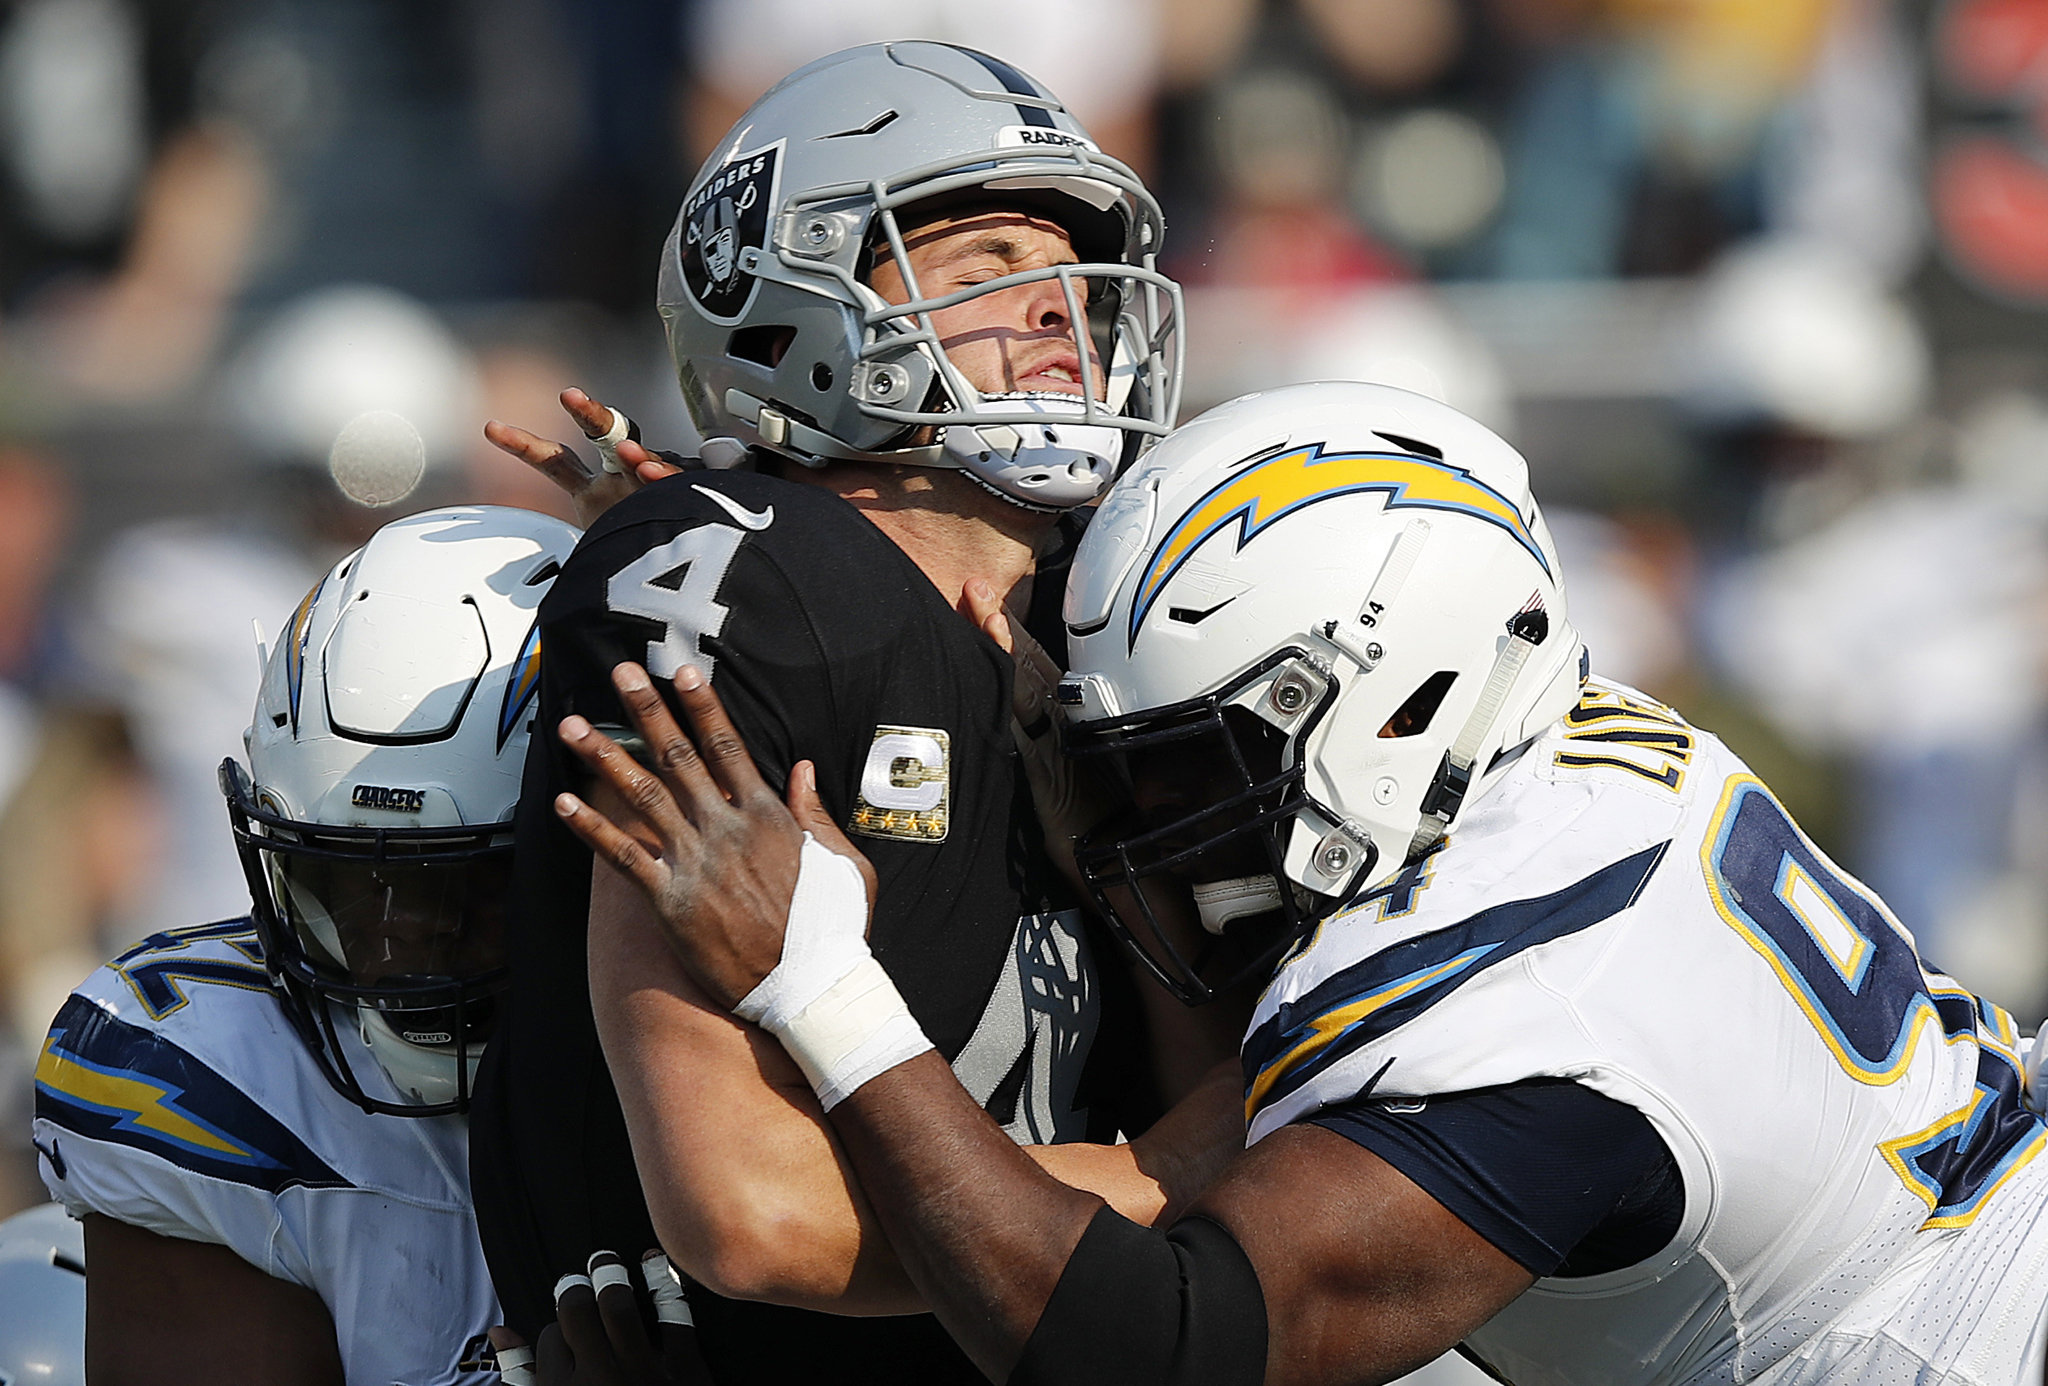 chargers-raiders-football-f40a02cd852973b8.jpg